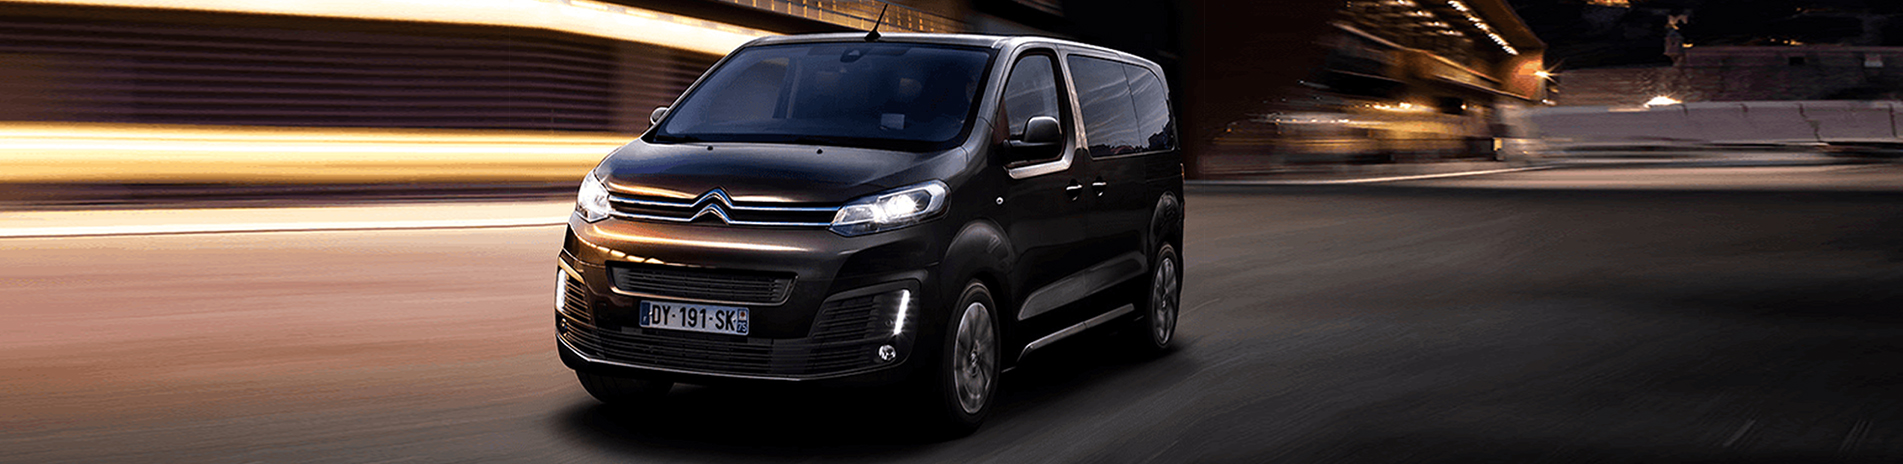 citroen spacetourer-business Banner